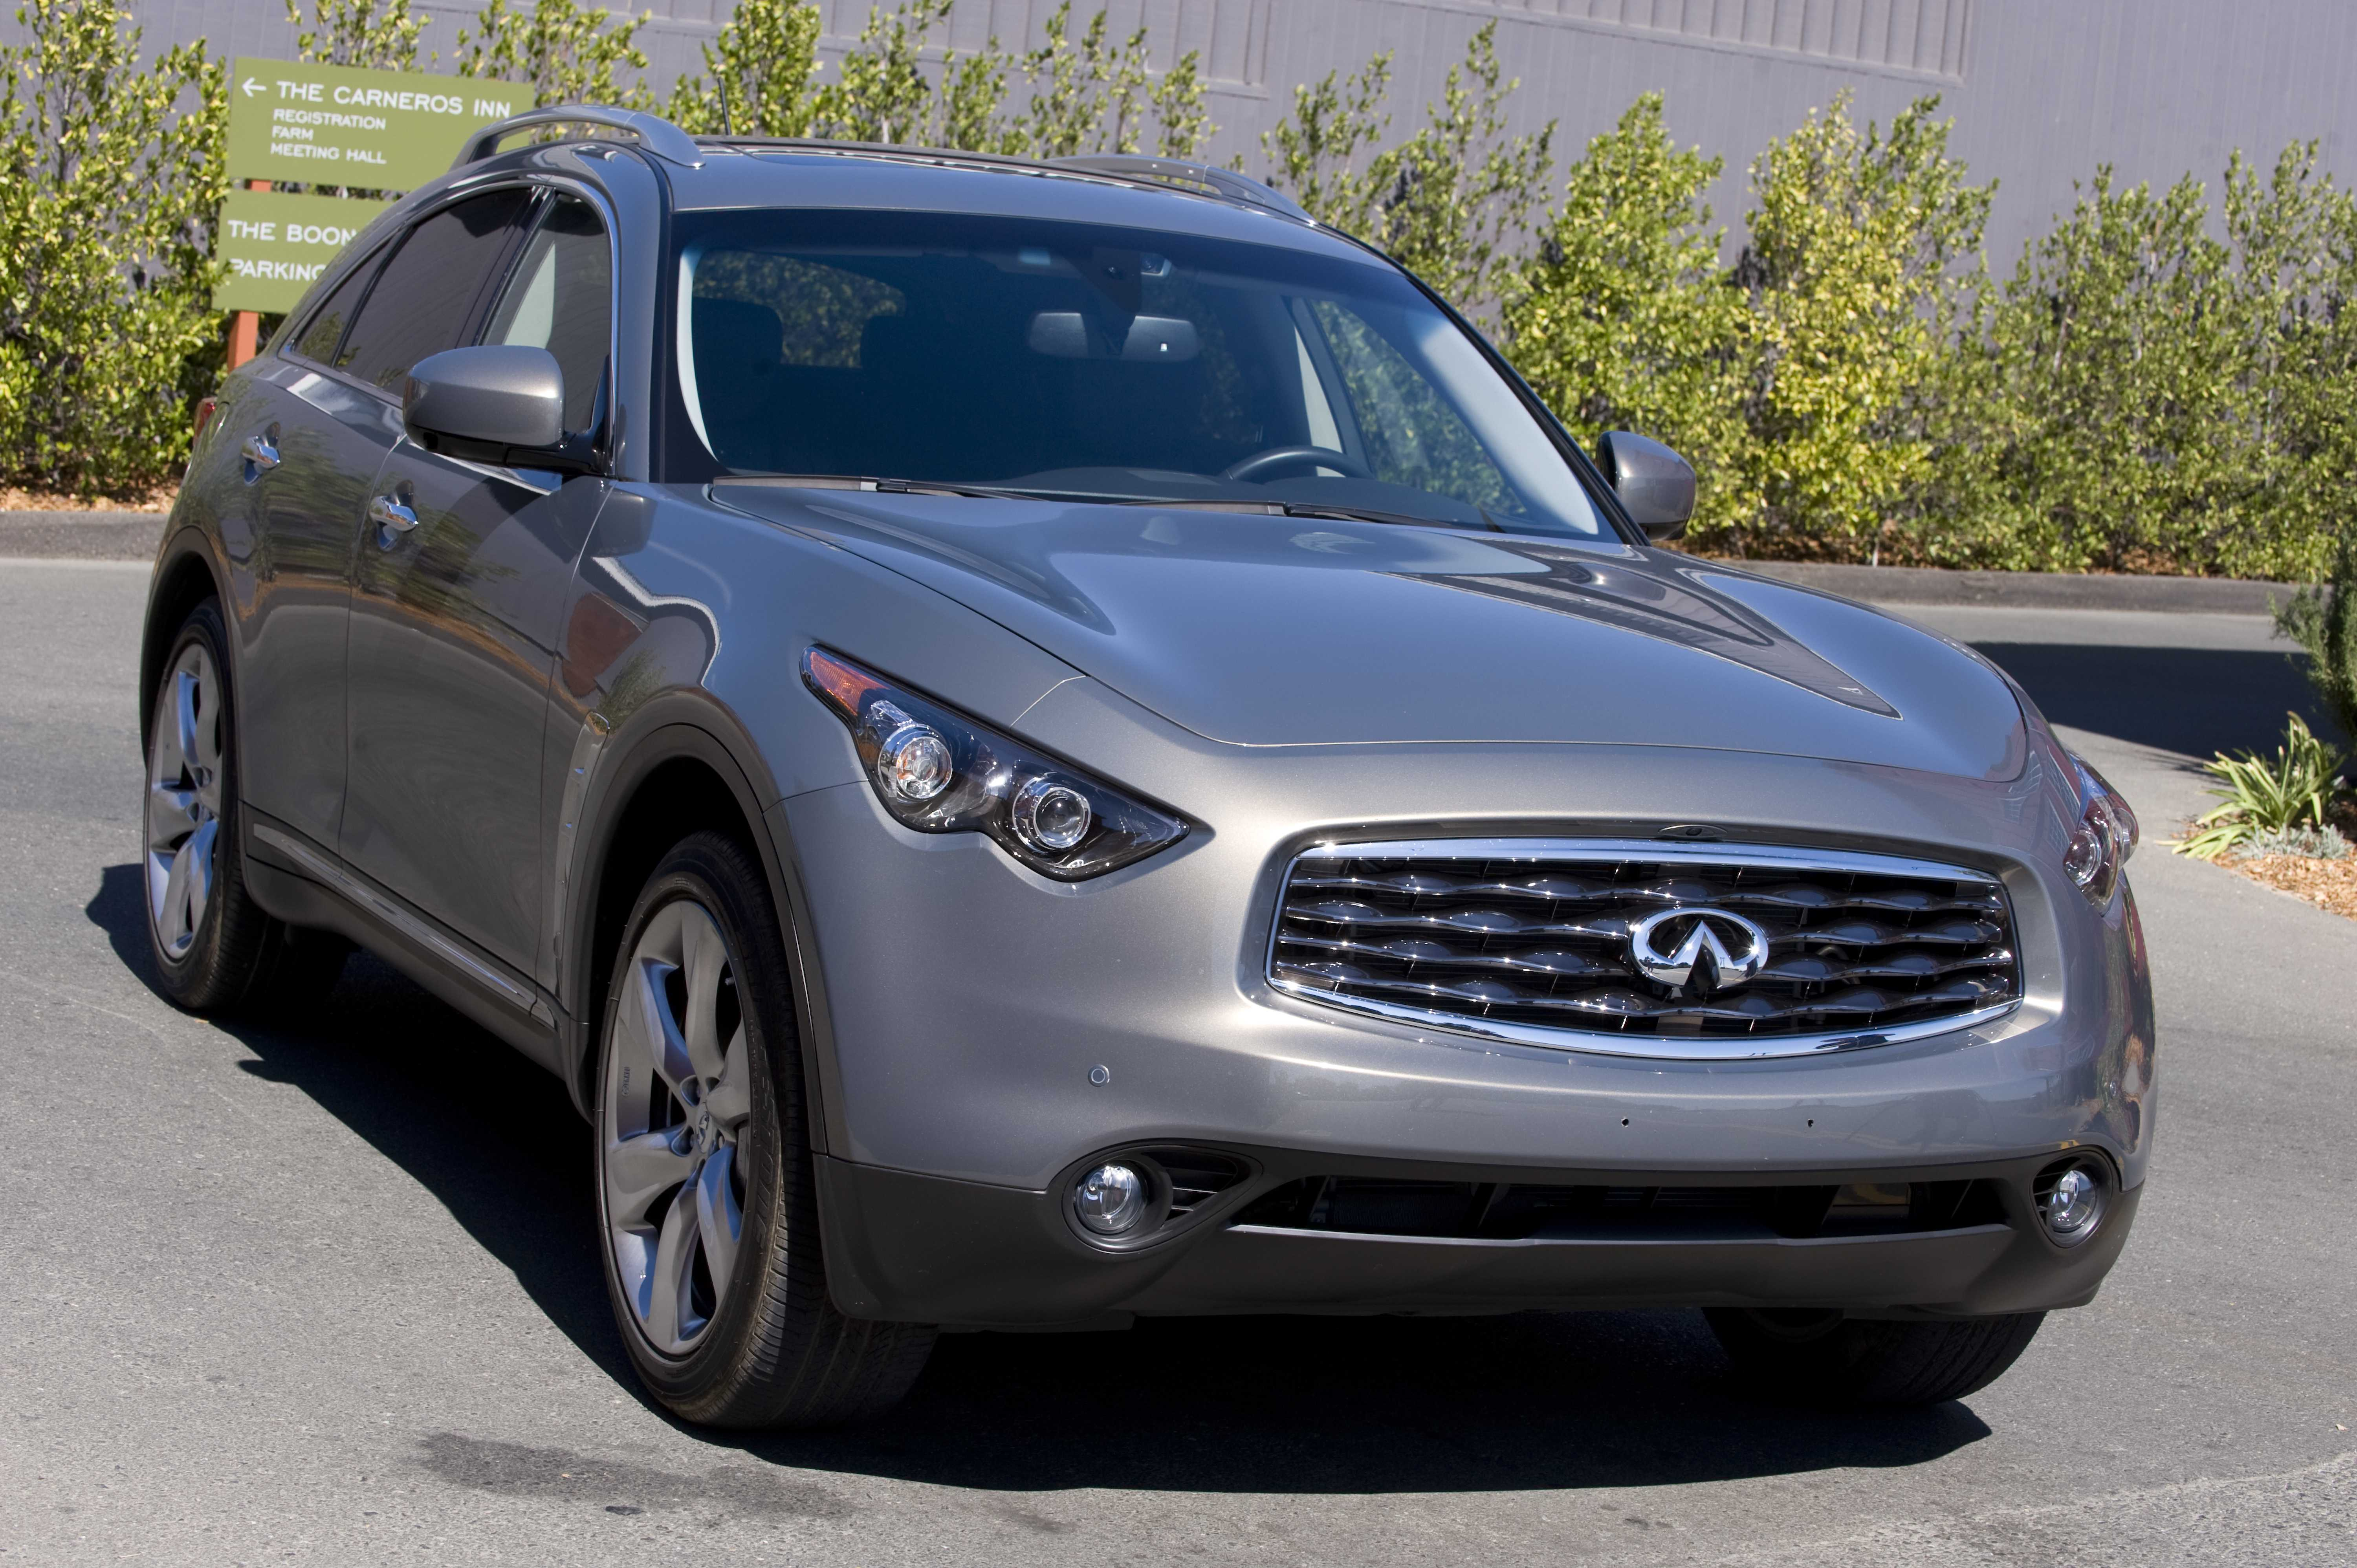 qatar full kczypft vehicles img living option for infiniti infinity sale advert